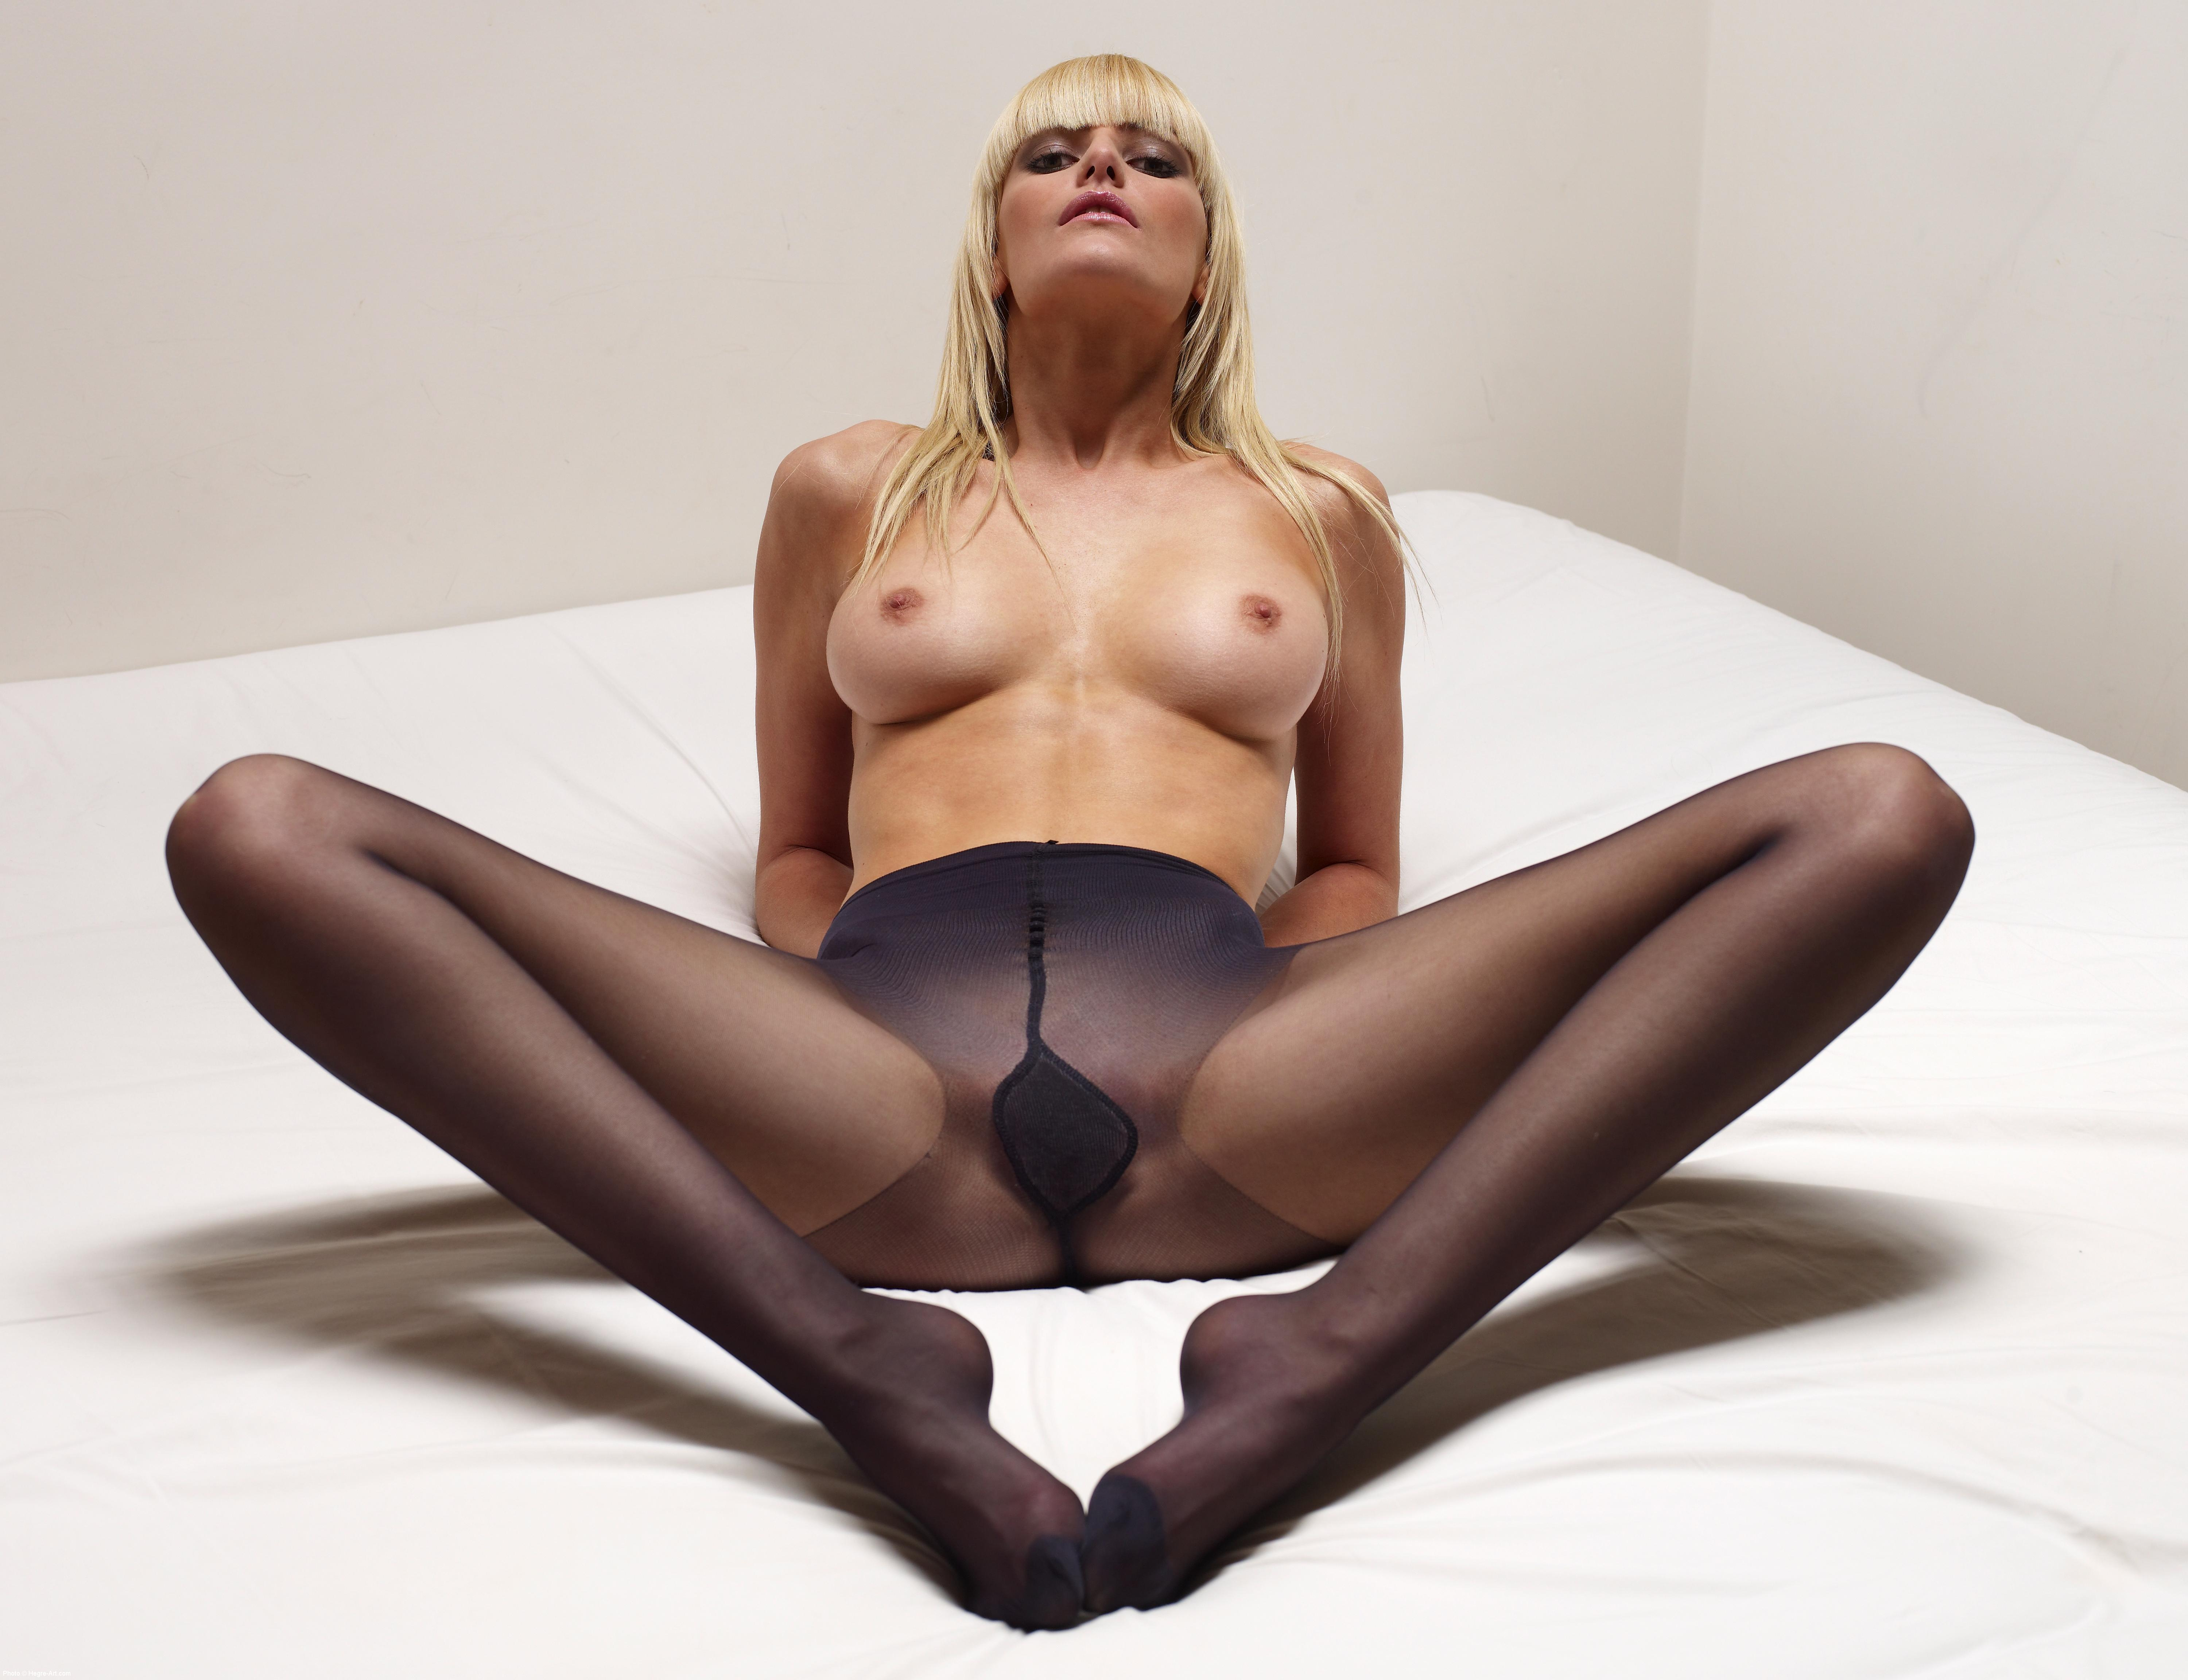 Much same xxxl pantyhose something is